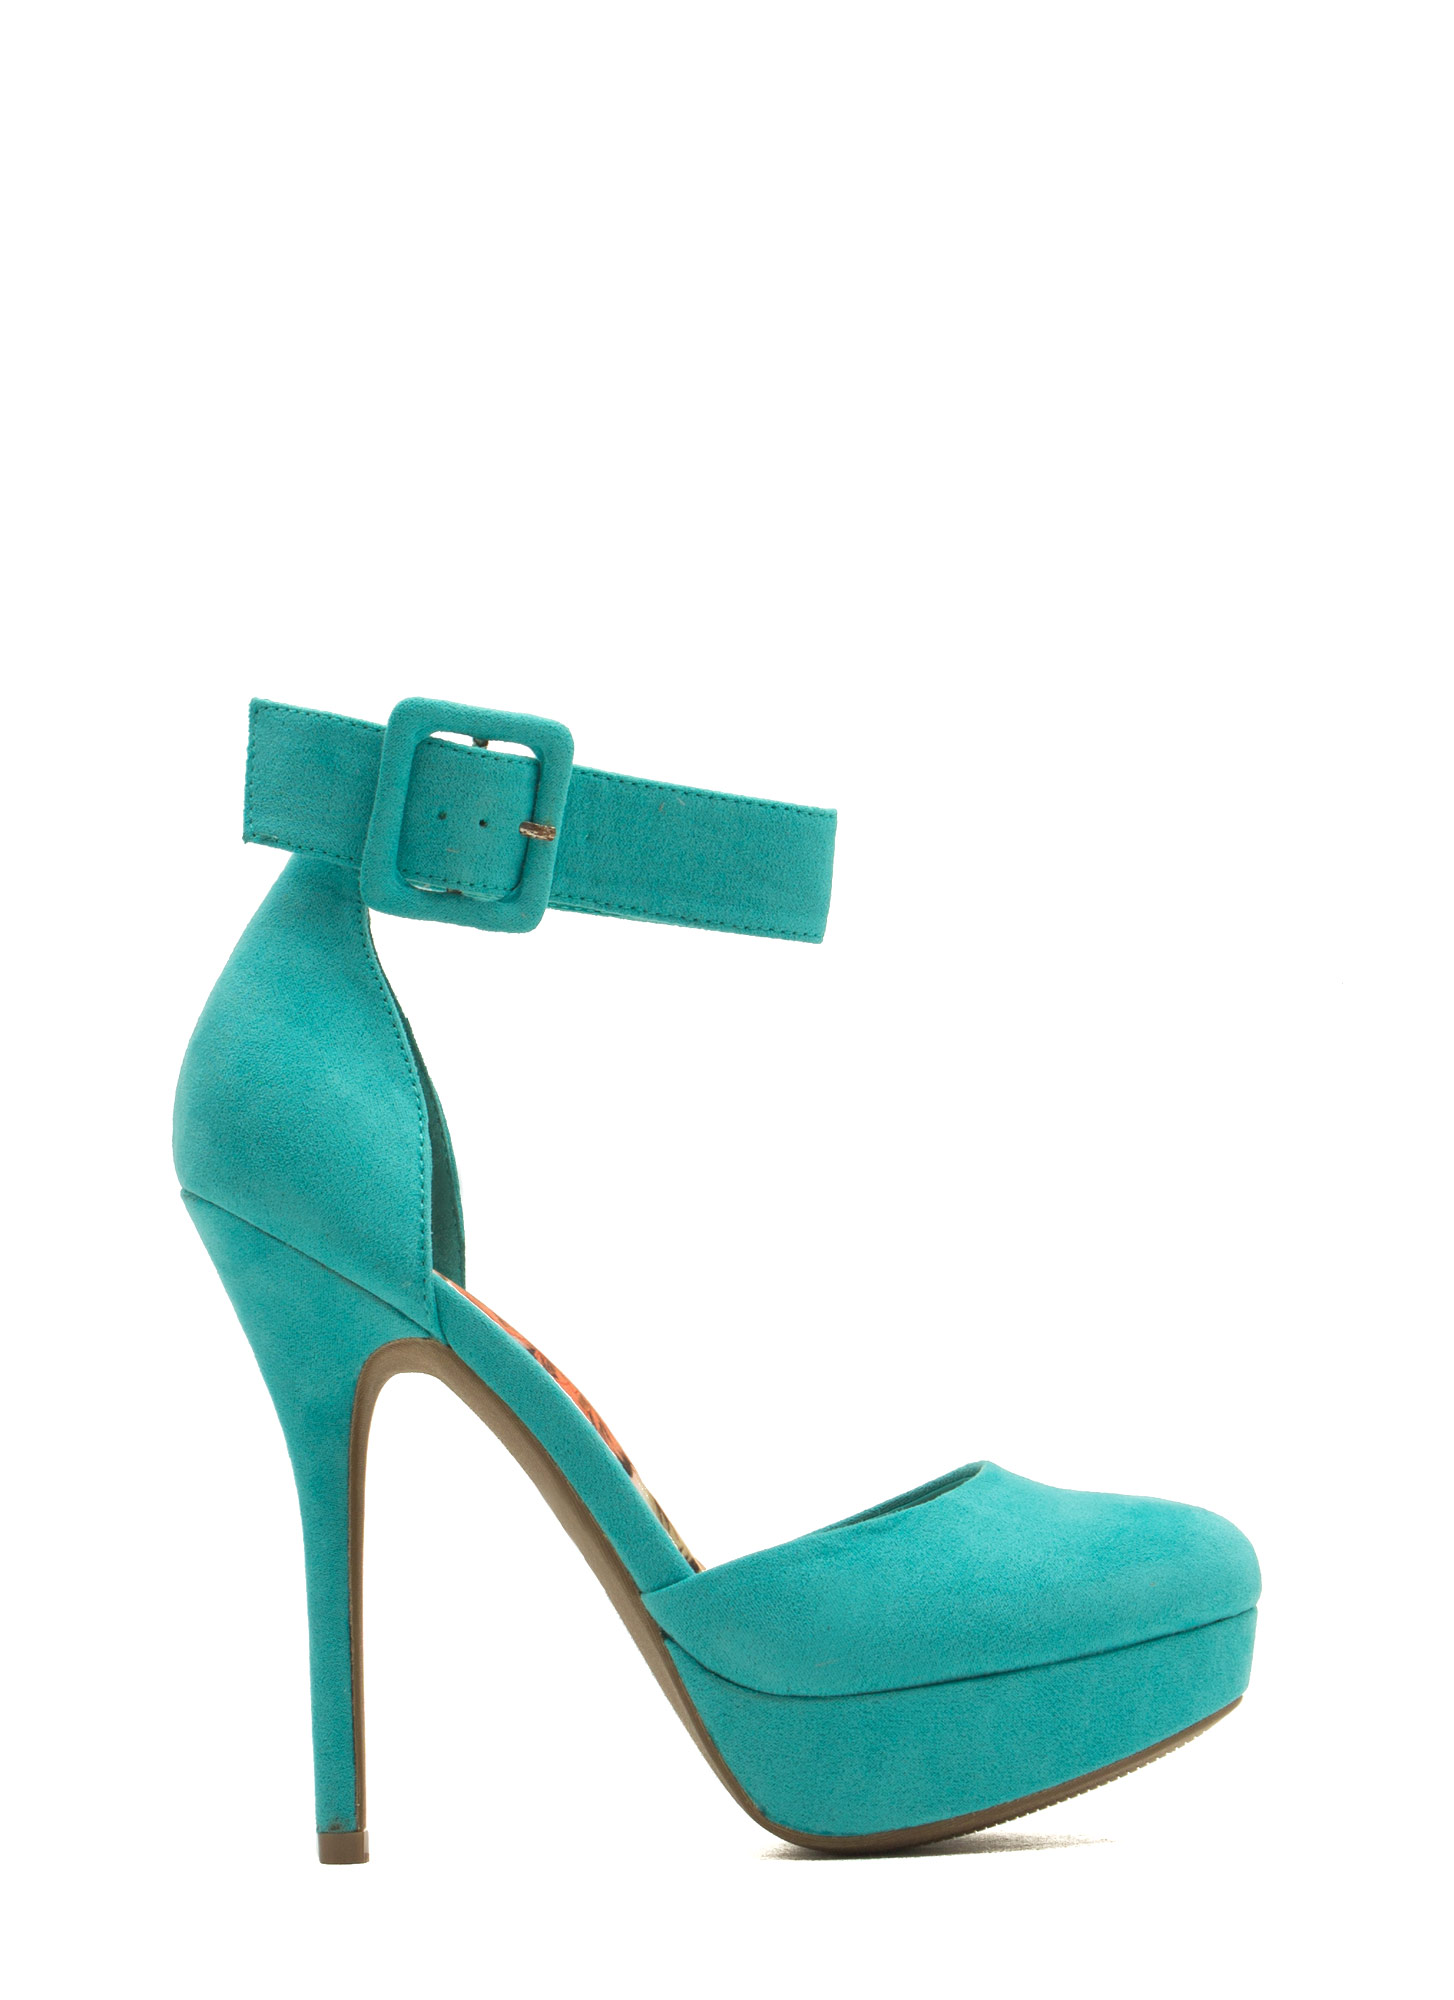 Strappy Platform D'Orsay Heels TURQUOISE